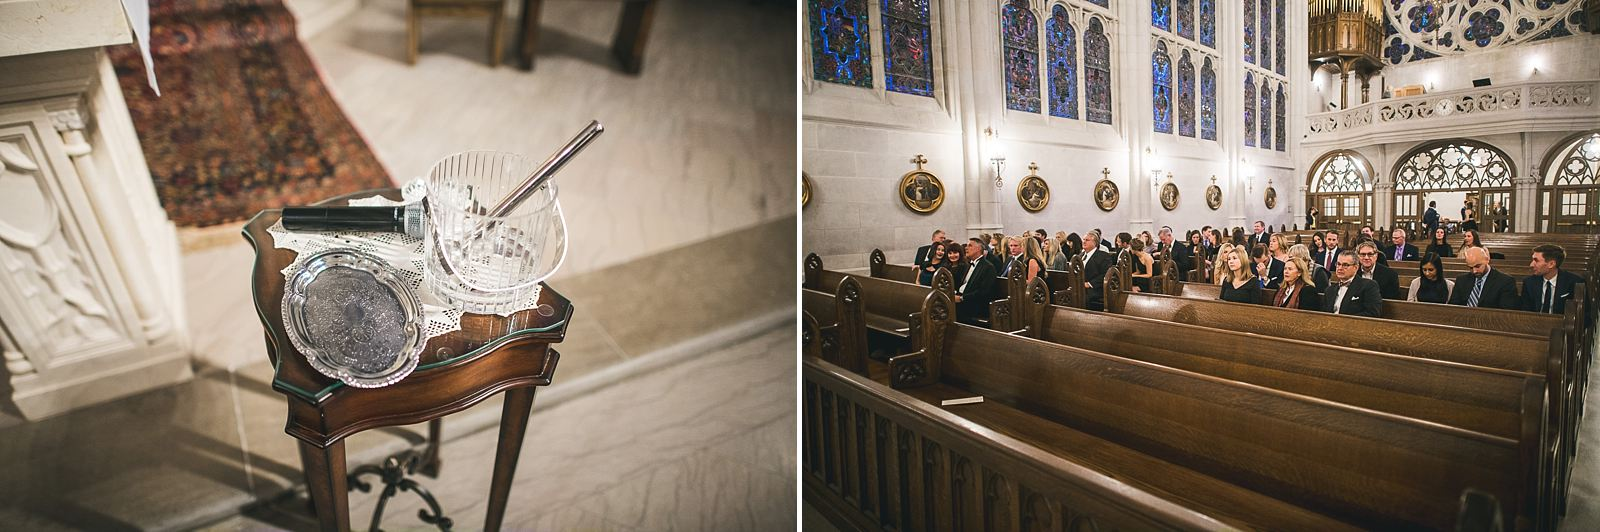 19 st james chapel chicago - Ivy Room Wedding // Audrey + Tyler